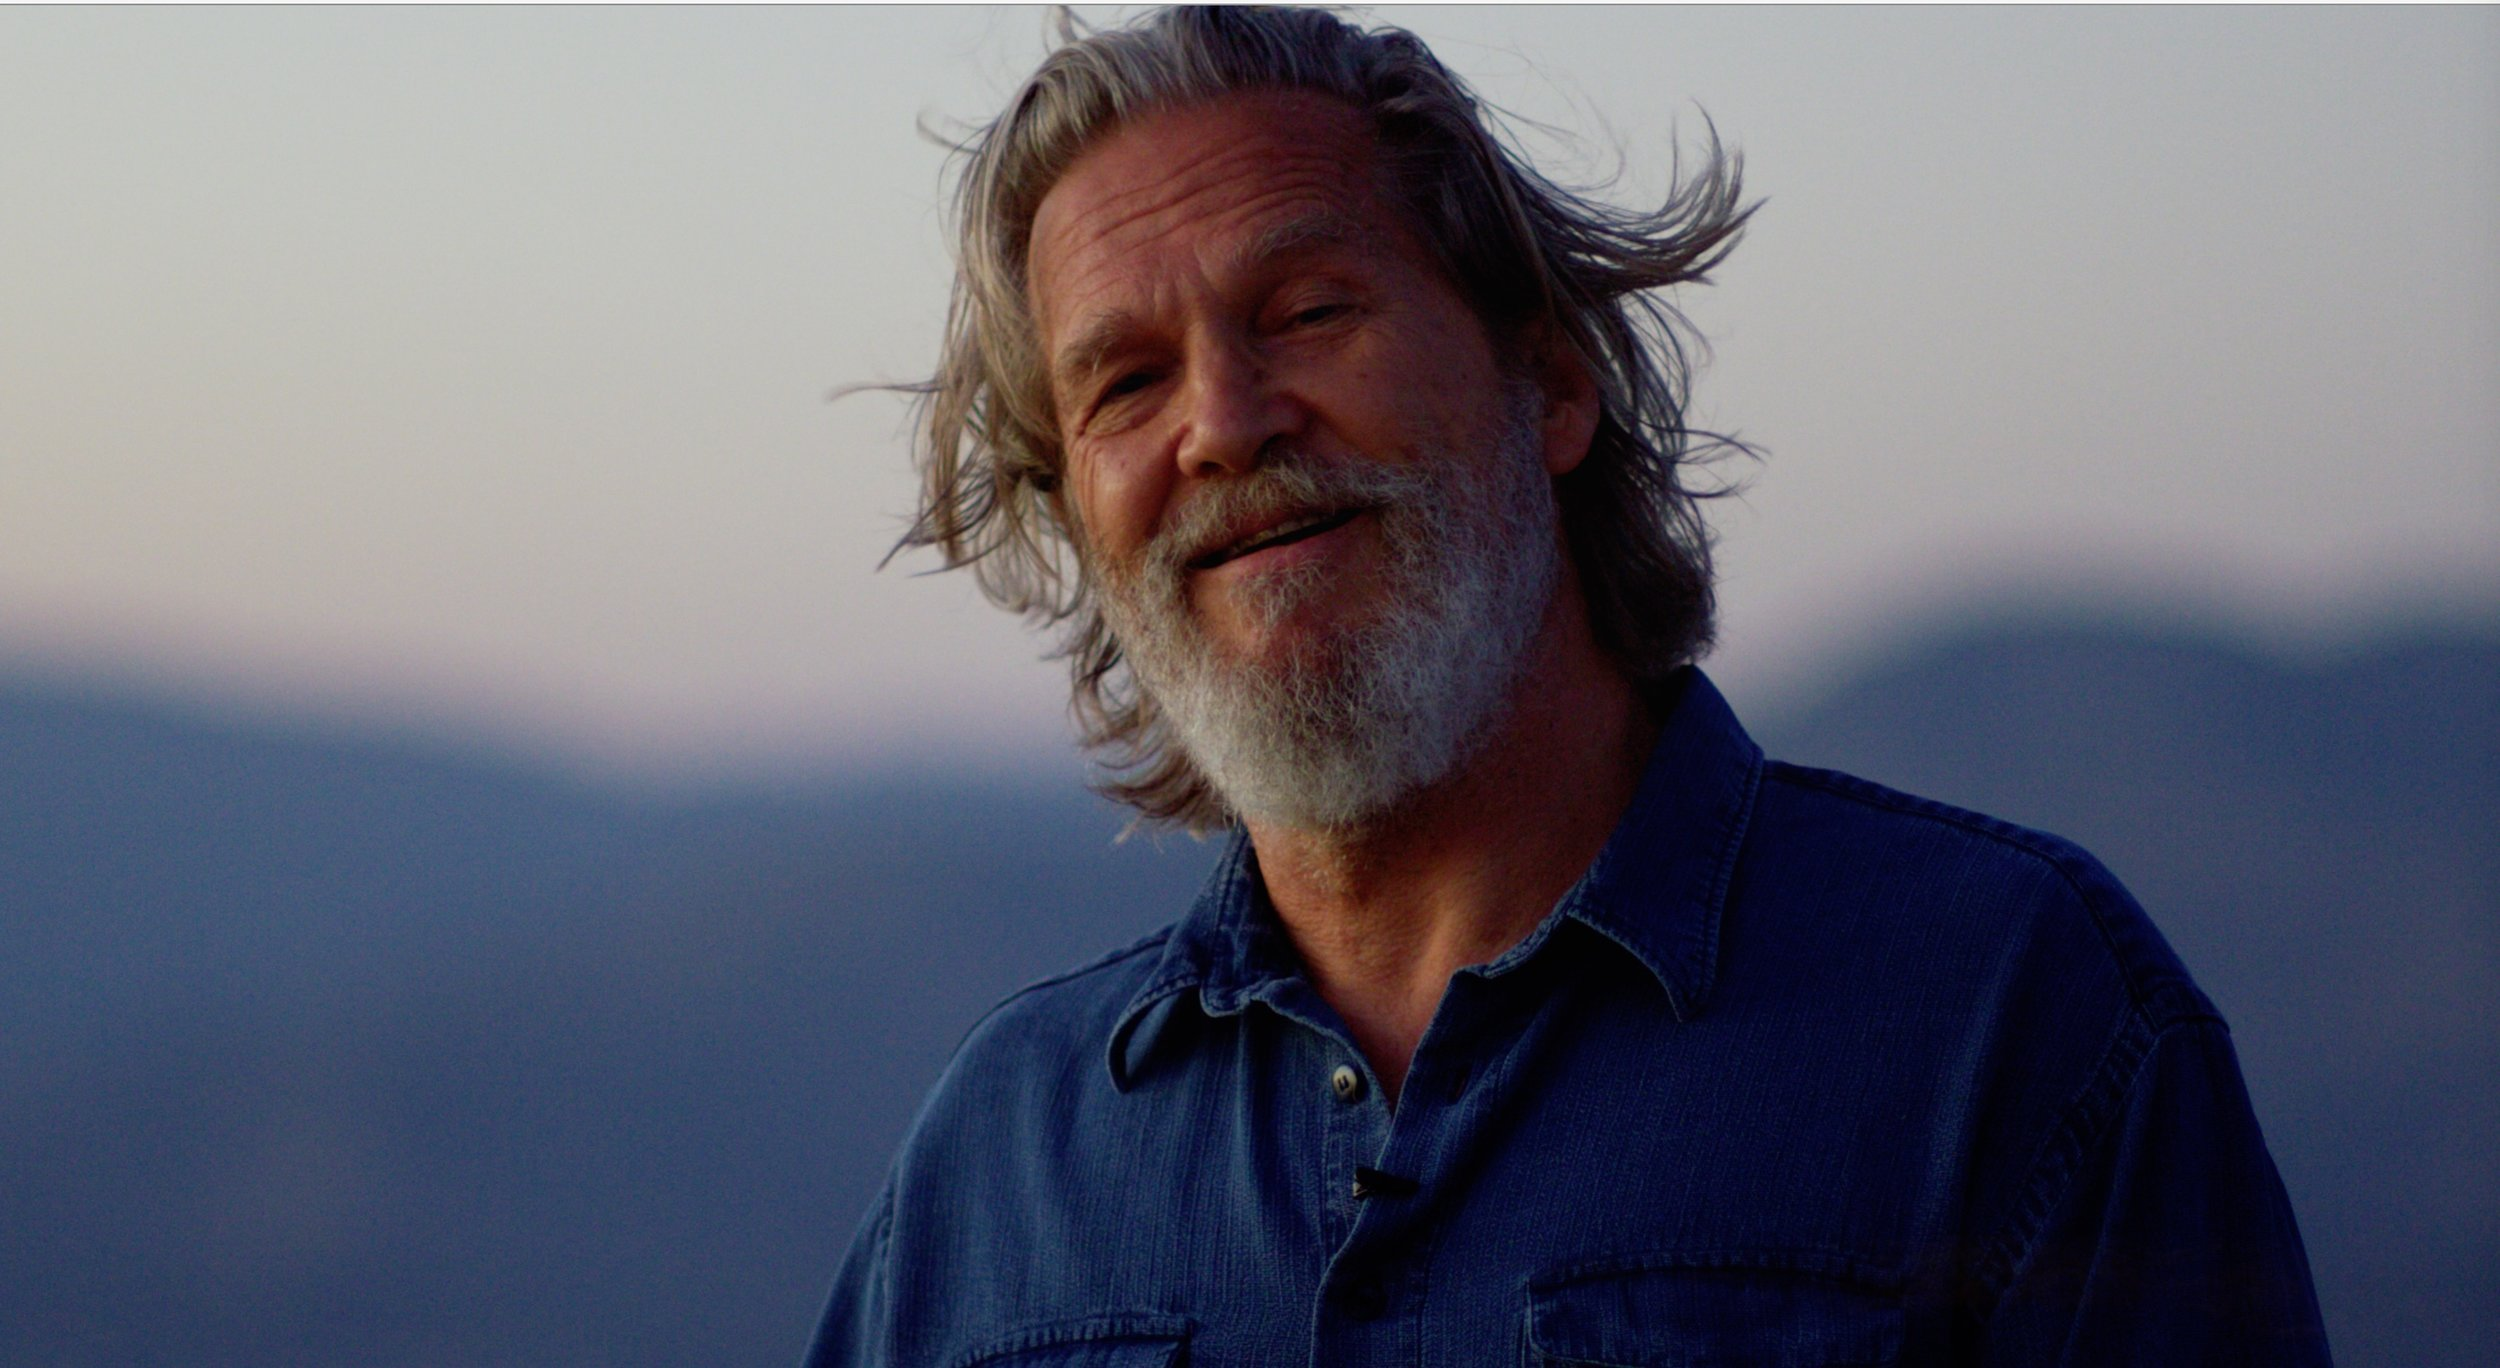 Jeff-Bridges-LITFP-7.jpeg